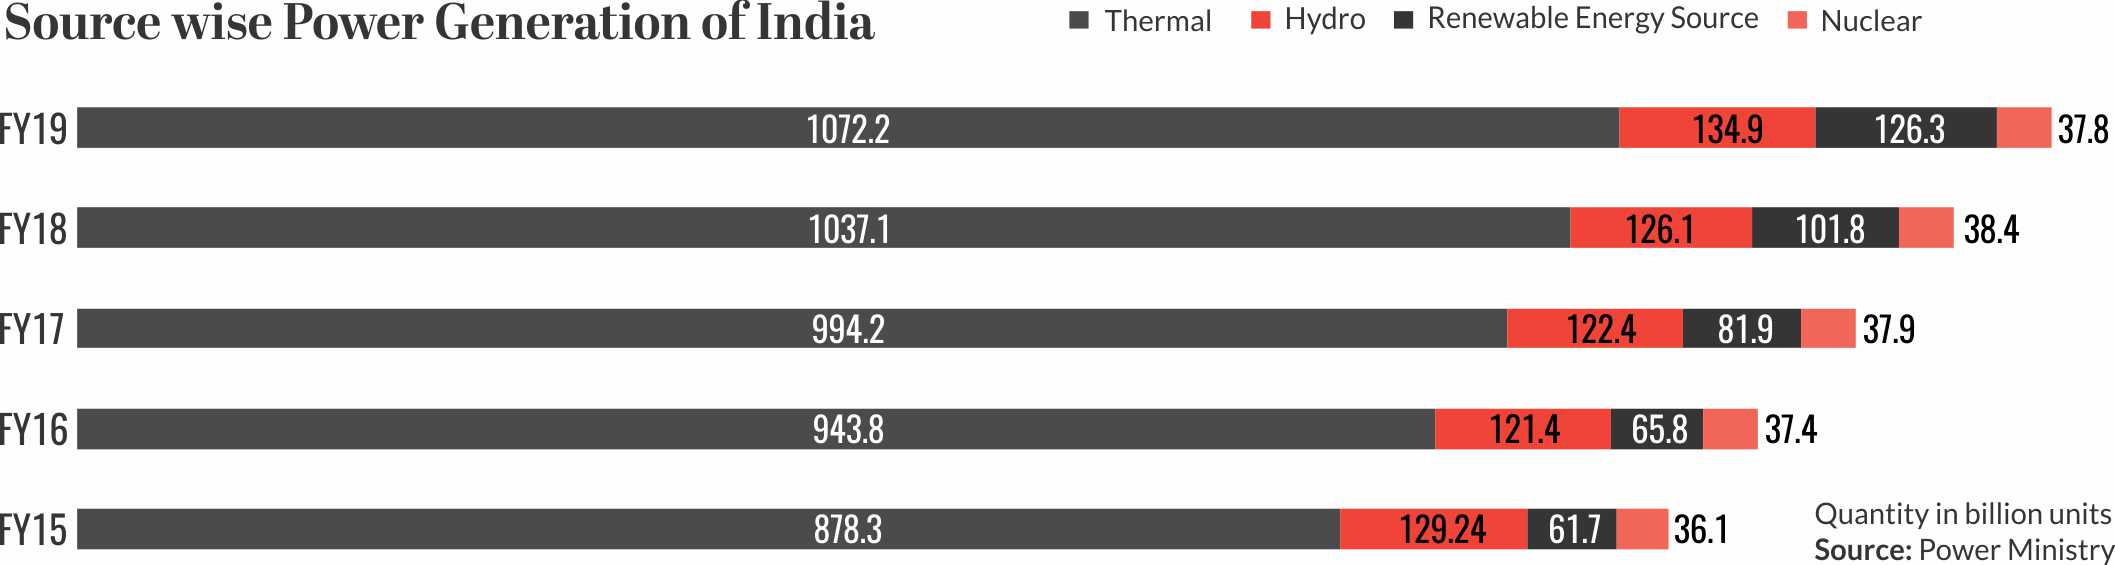 Source wise Power Generation Of India